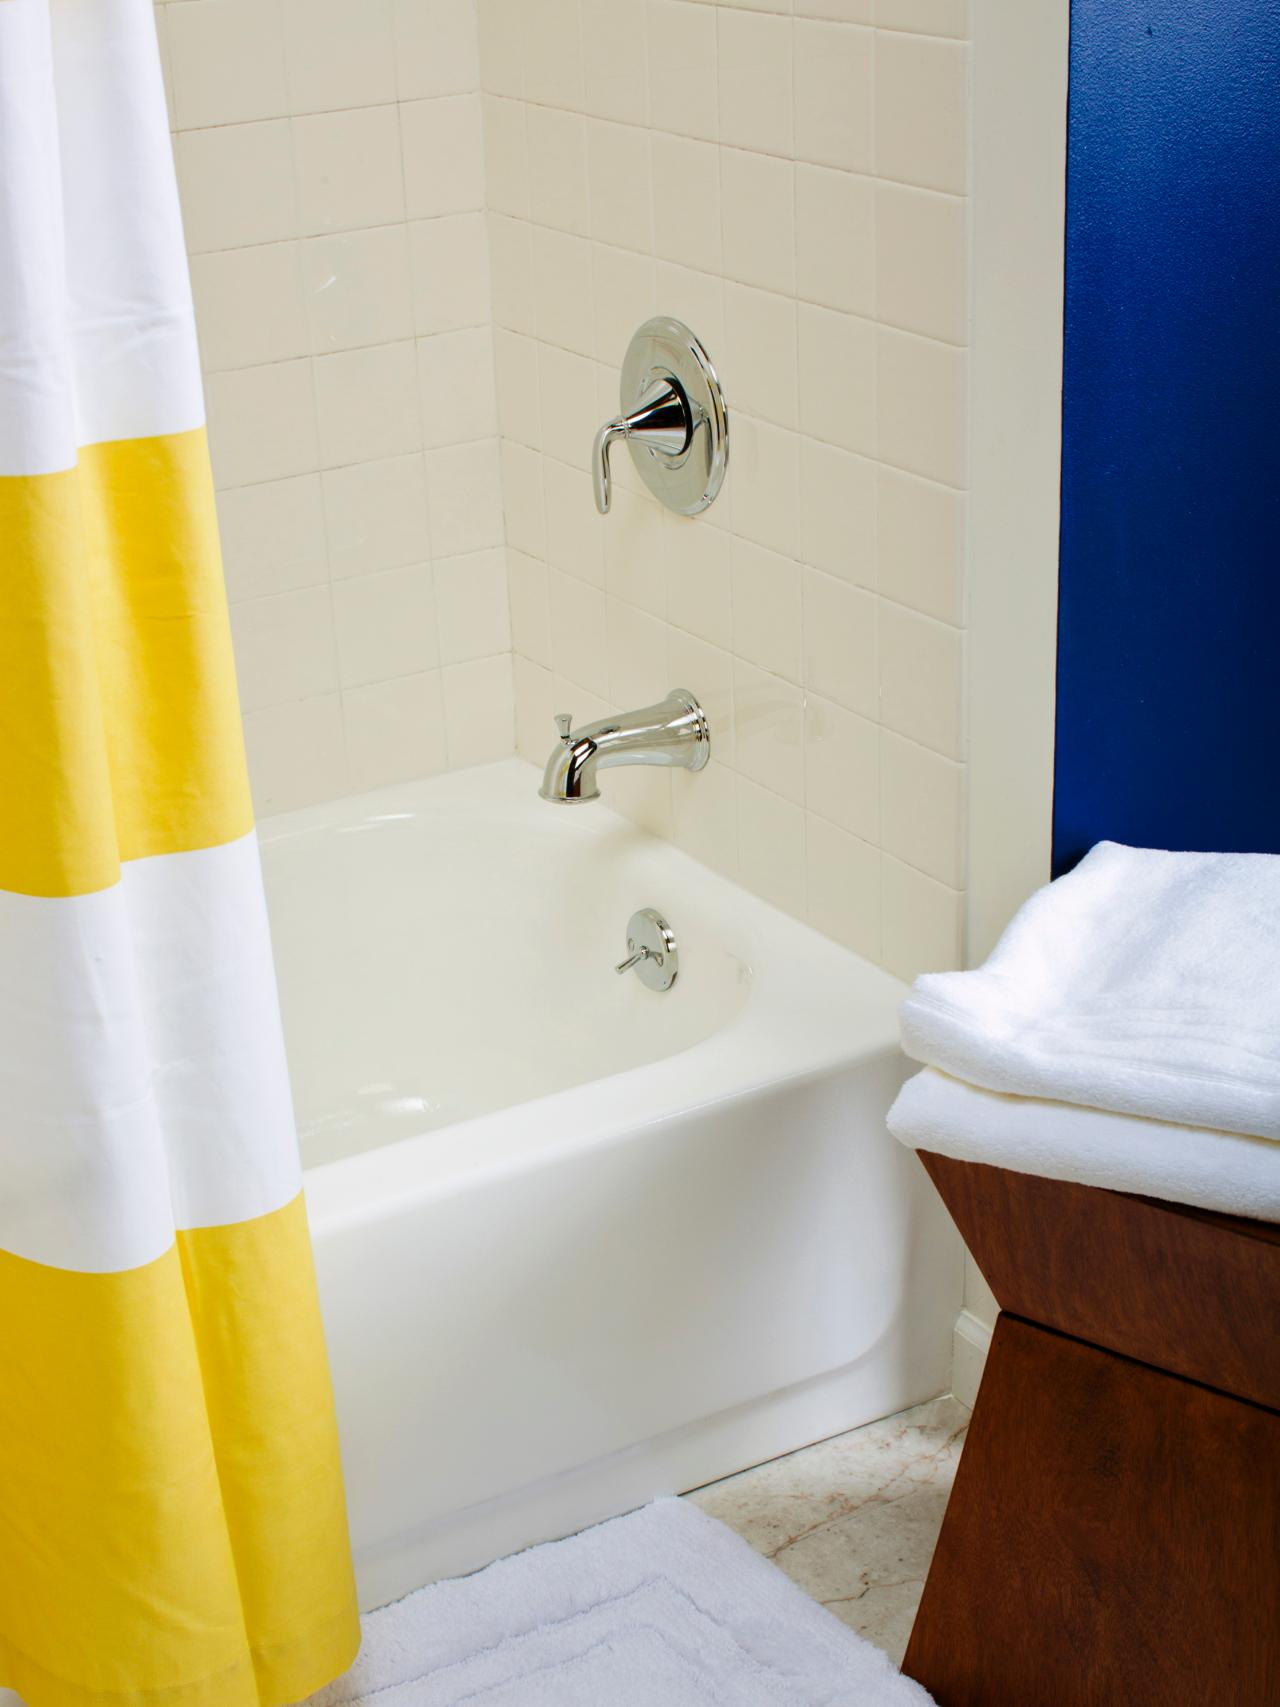 Tips From the Pros on Painting Bathtubs and Tile